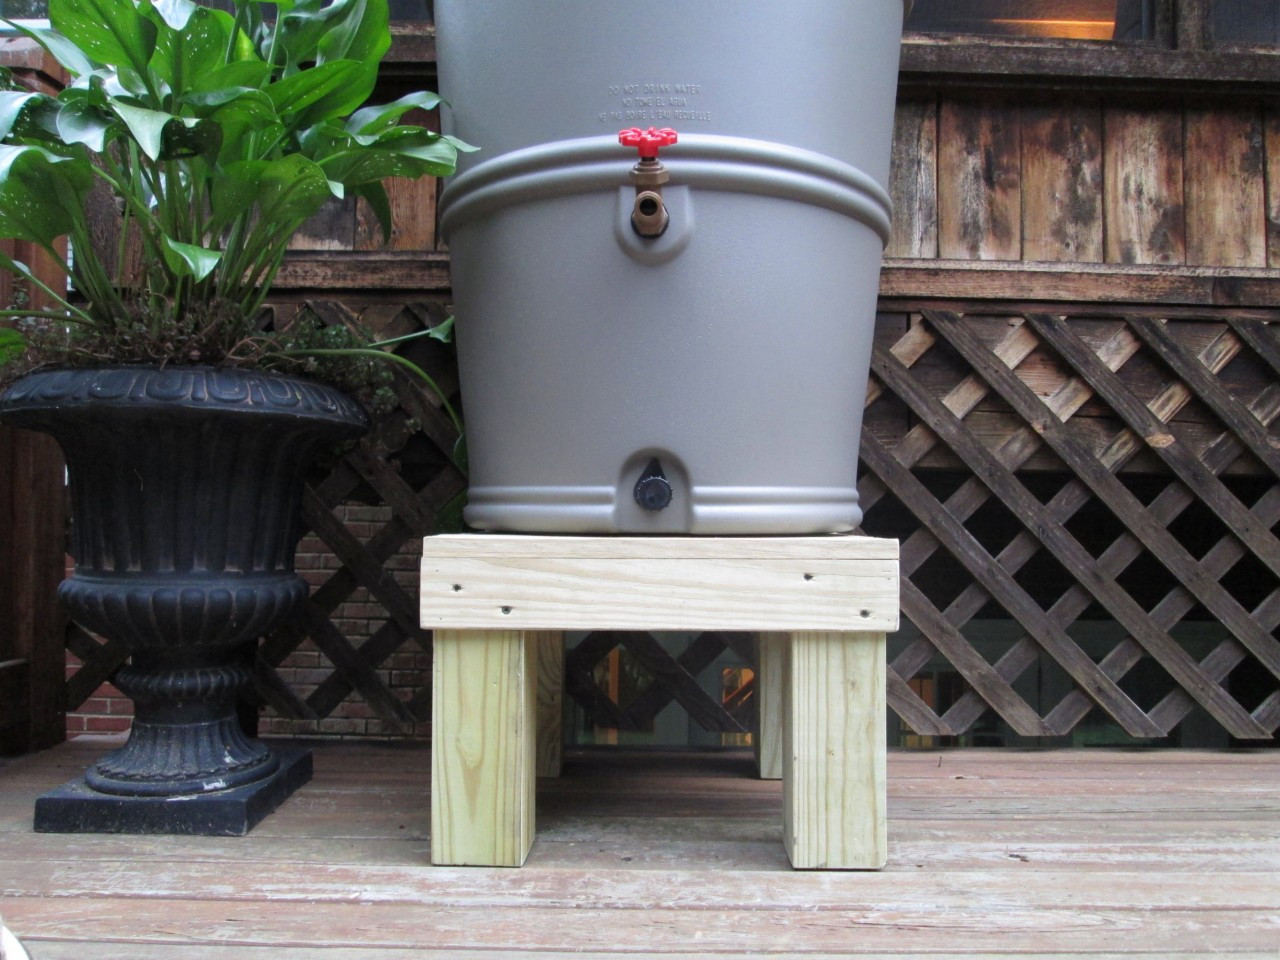 rain barrel stand, wooden rain barrel stand, chesapeake rain barrel stand